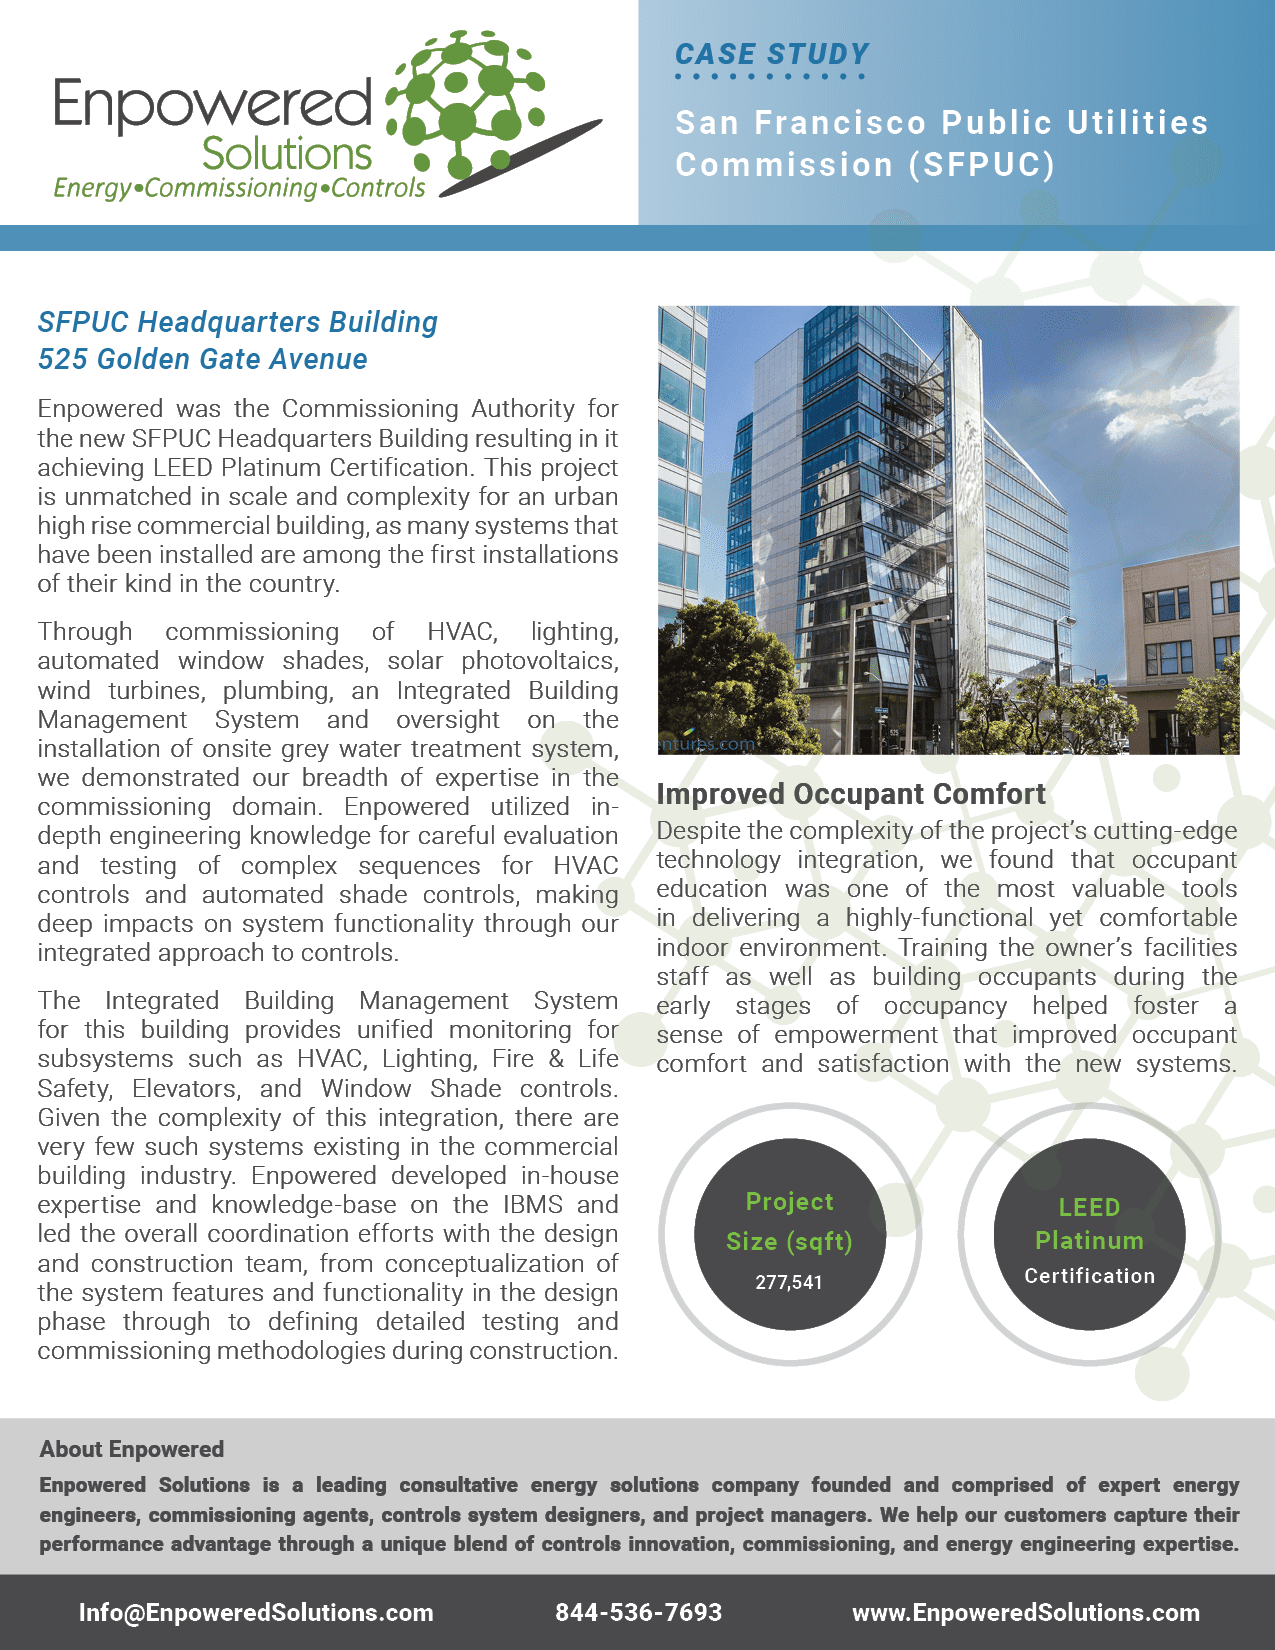 Preview of Enpowered Solutions Case Study - San Francisco Public Utilities Commission Headquarters